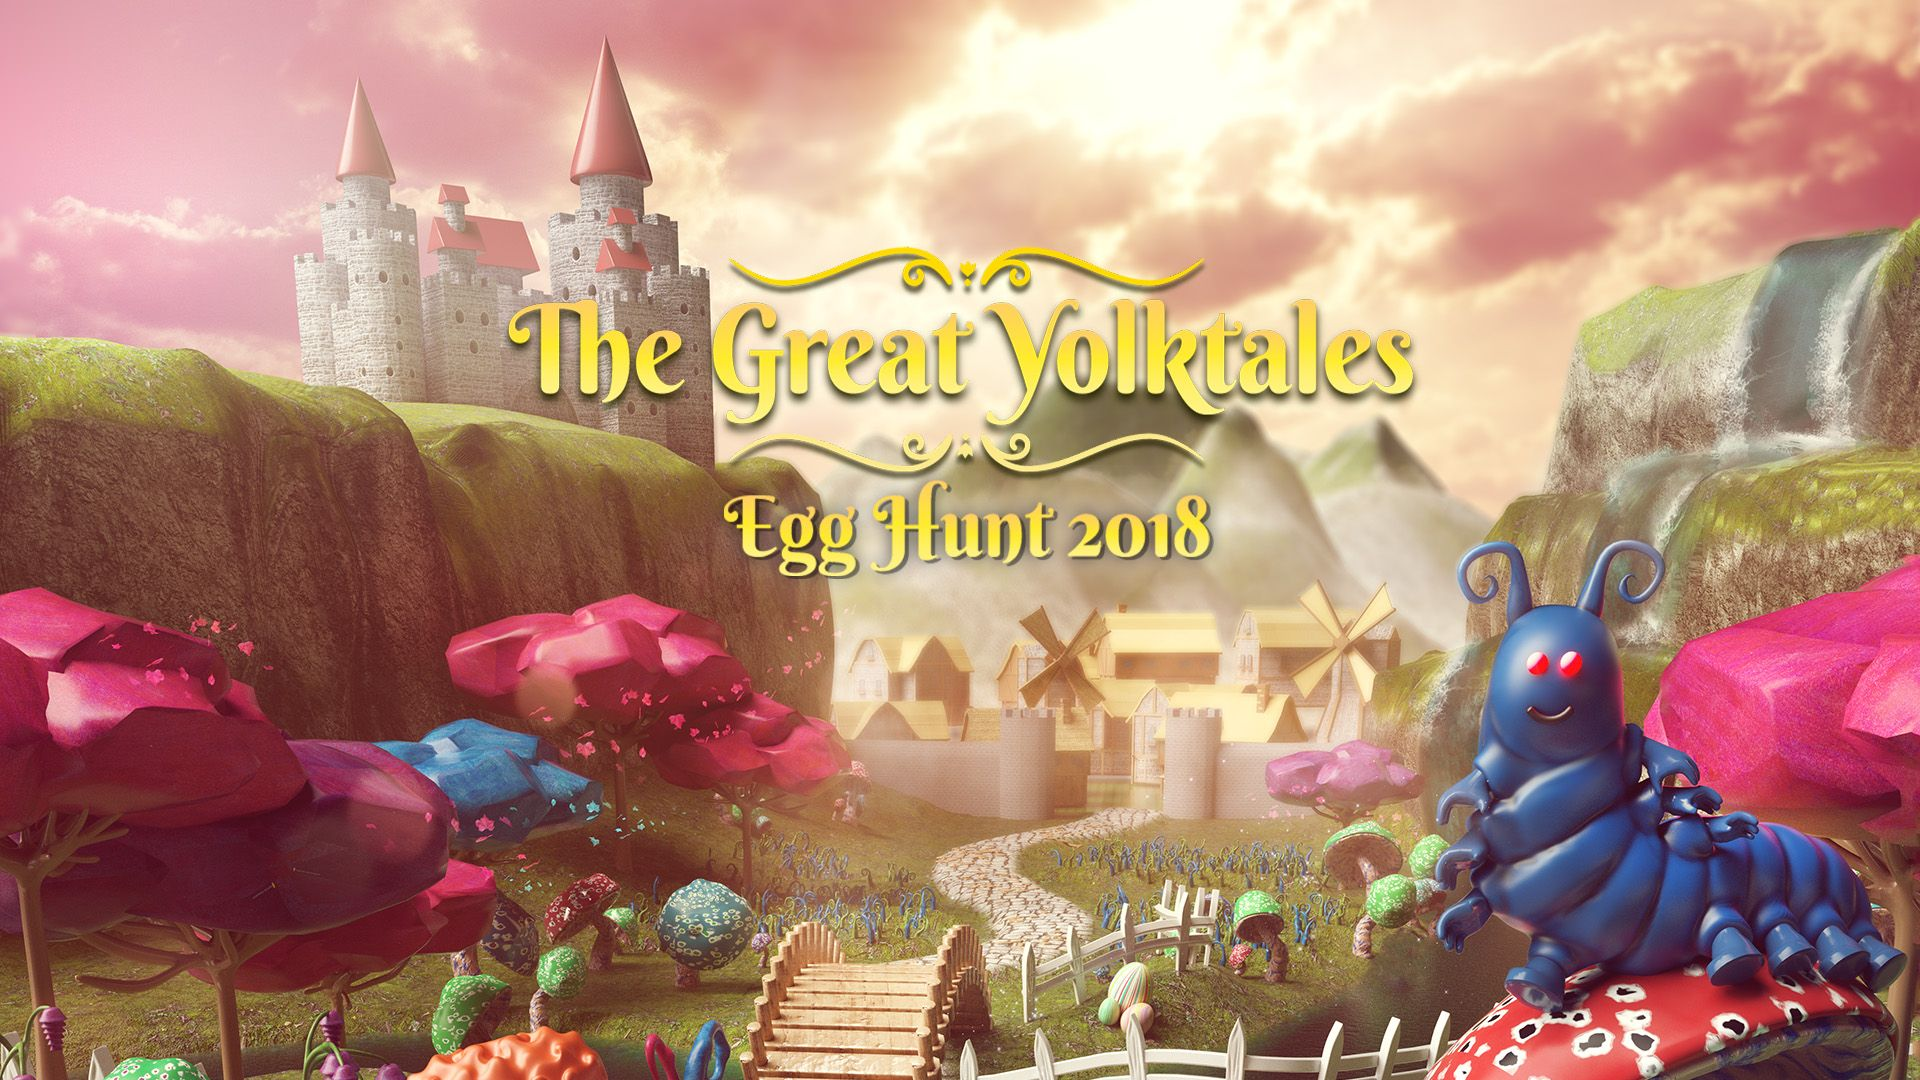 Egg Hunt 2018: The Great Yolktales [Official Trailer]